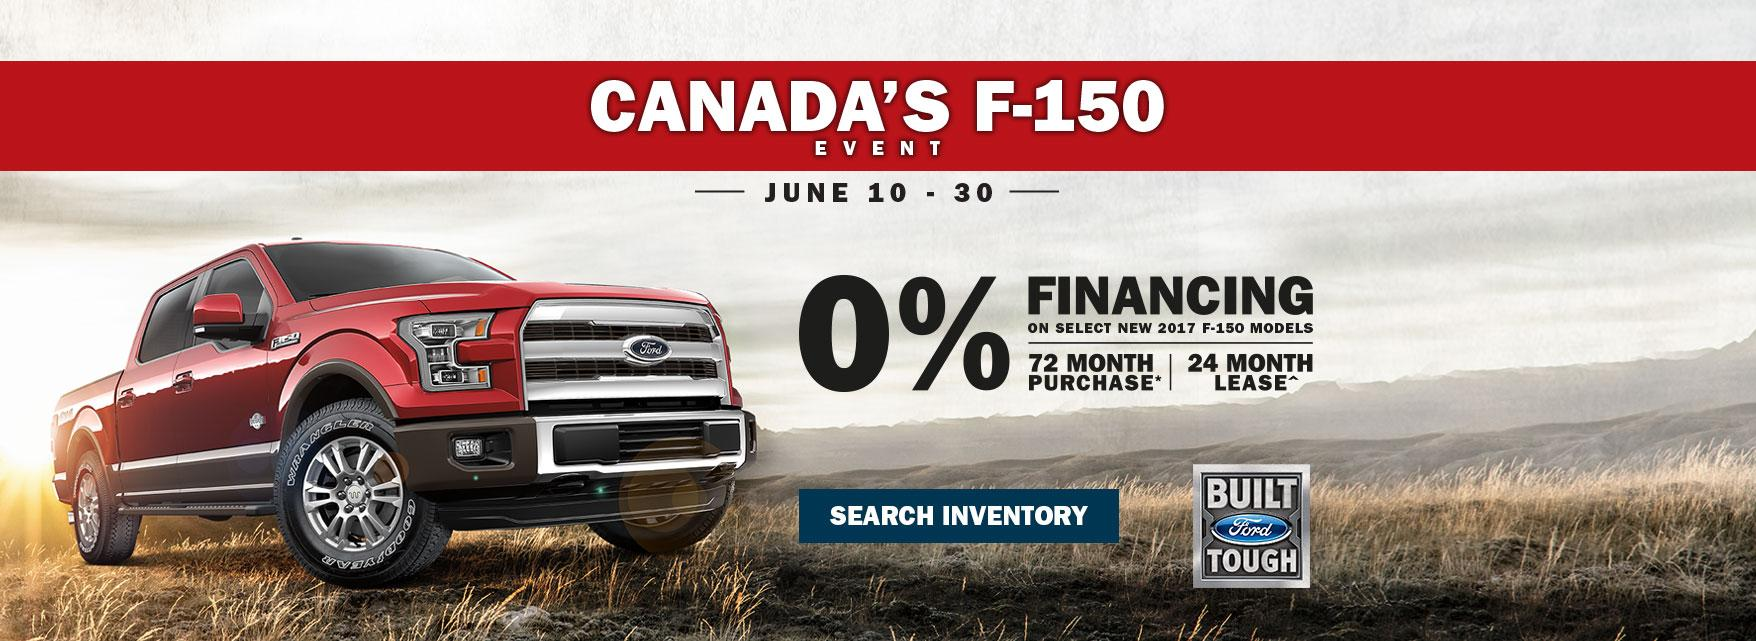 F-150 event D